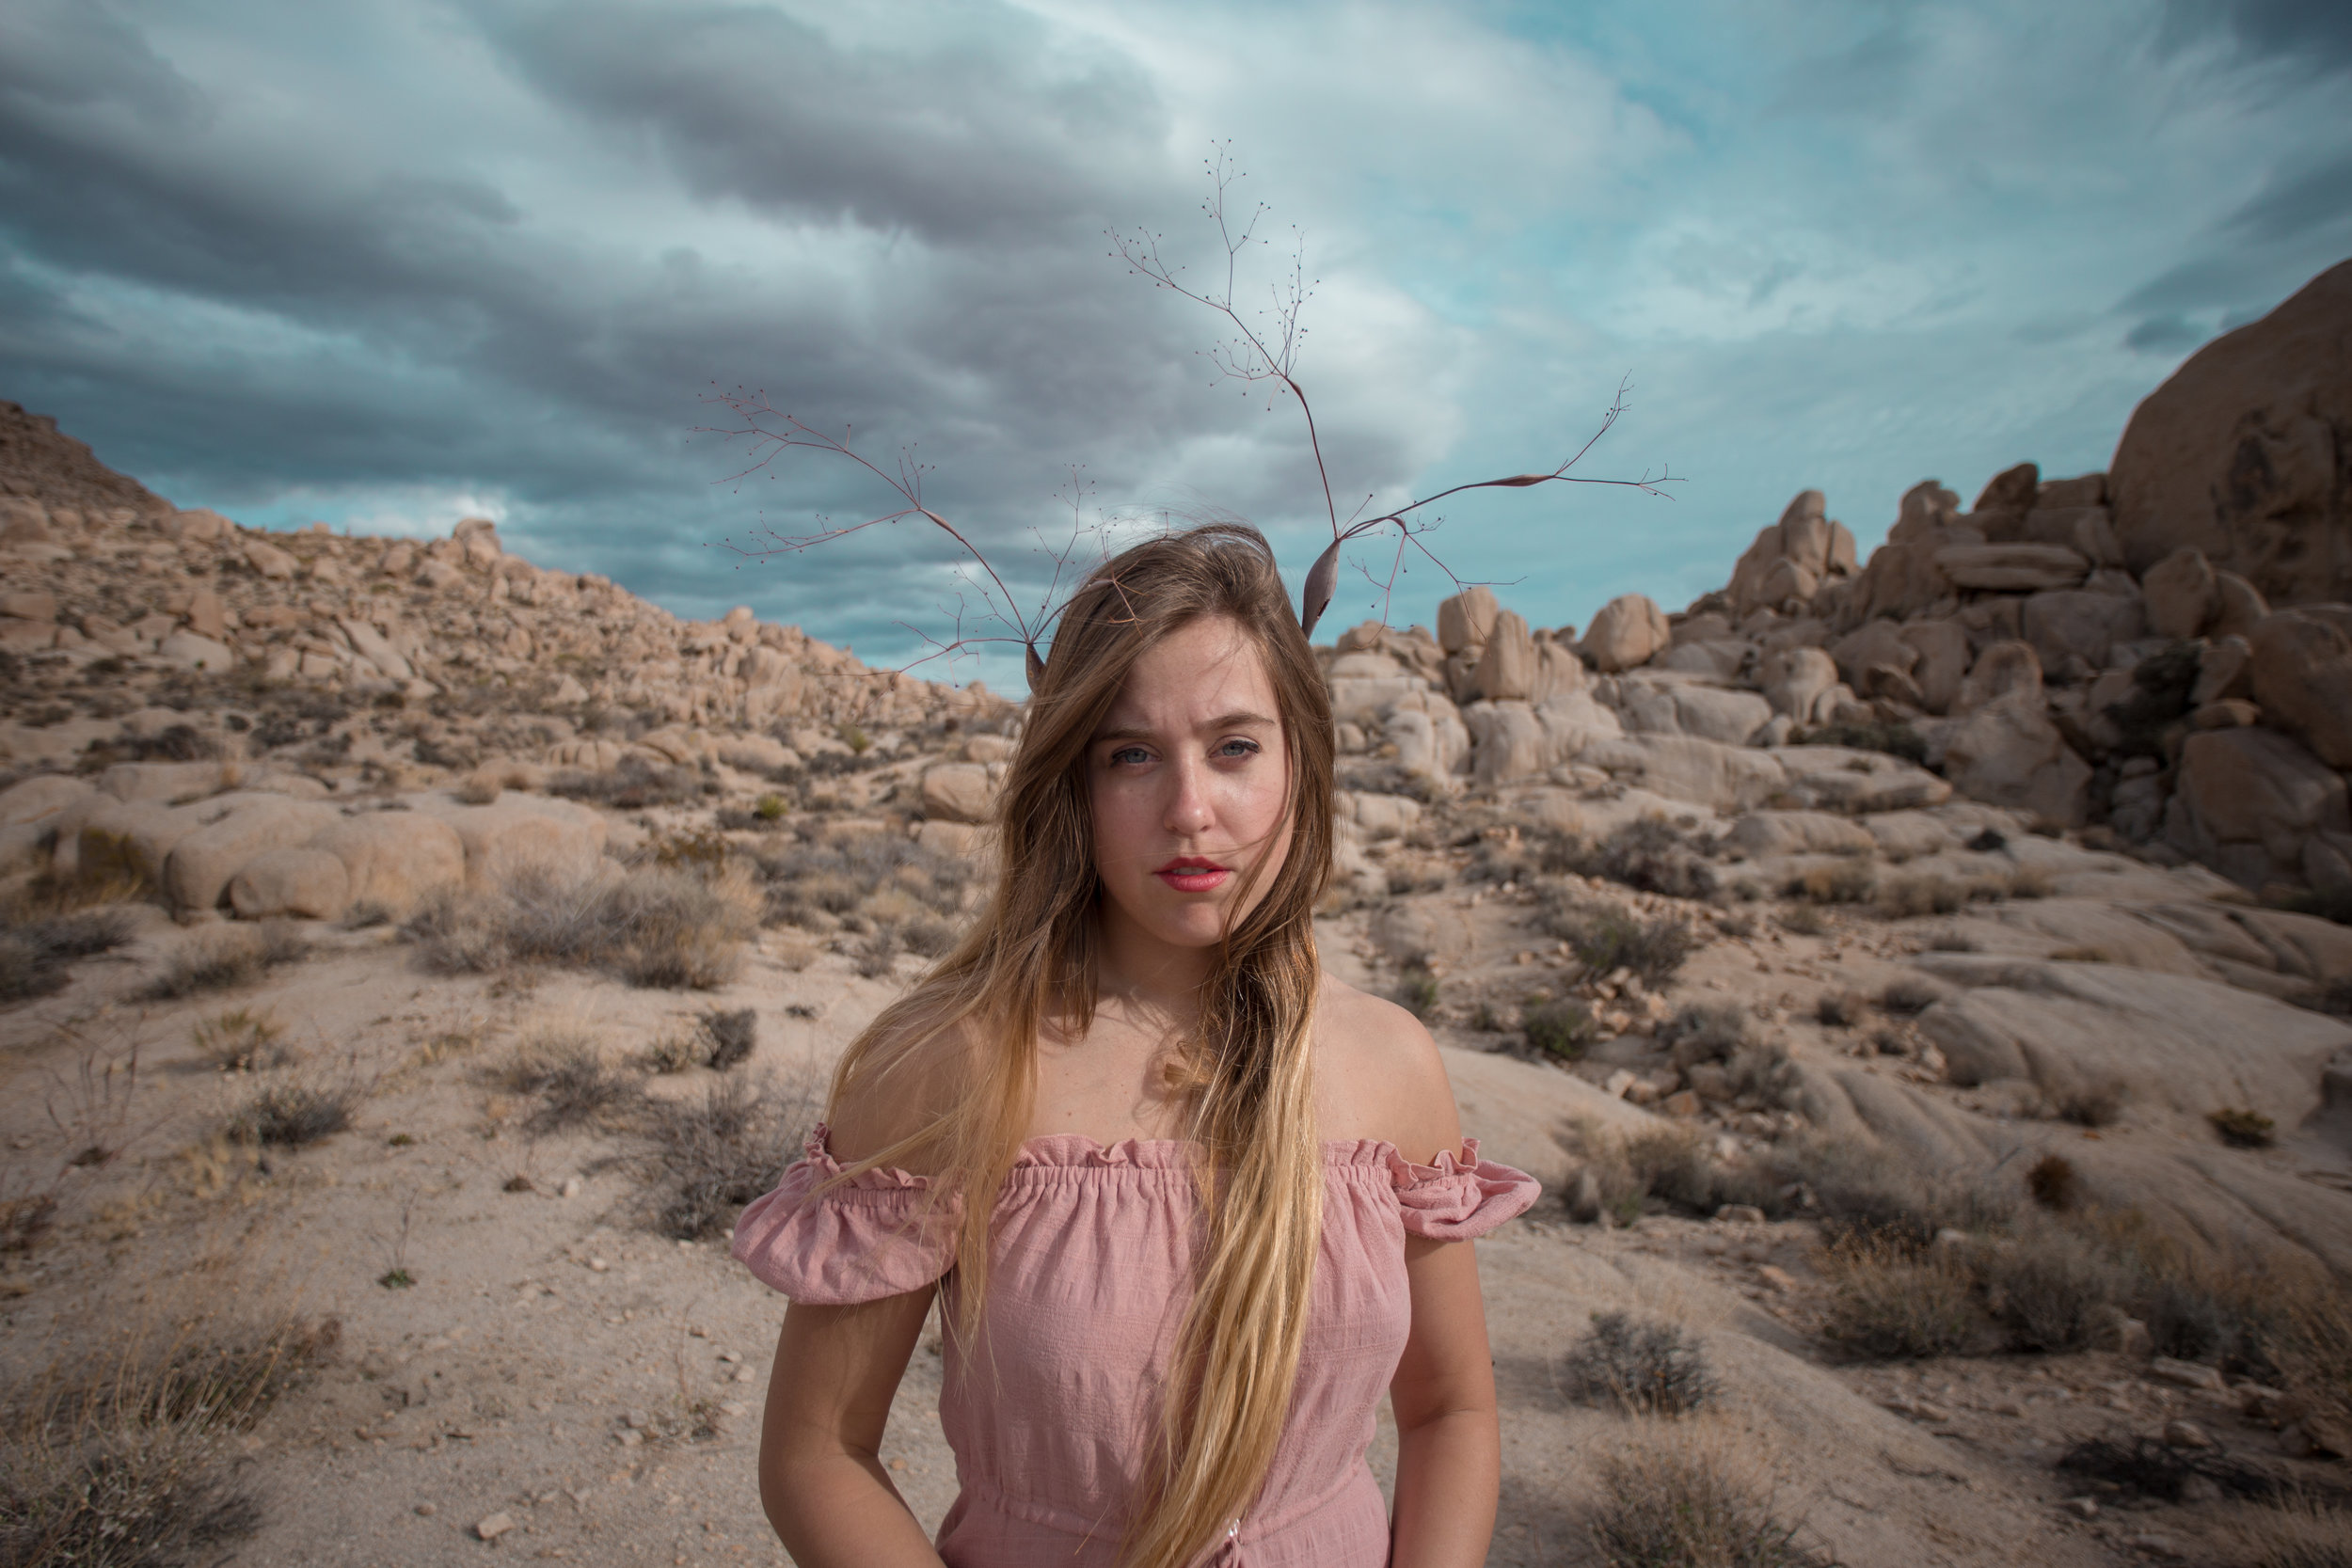 AstroBandit_JordanRose_Auguste_The_Label_LightPink_Spring_2018_Fashion_Maxi_Dress_Joshua_Tree_Storm_4.jpg